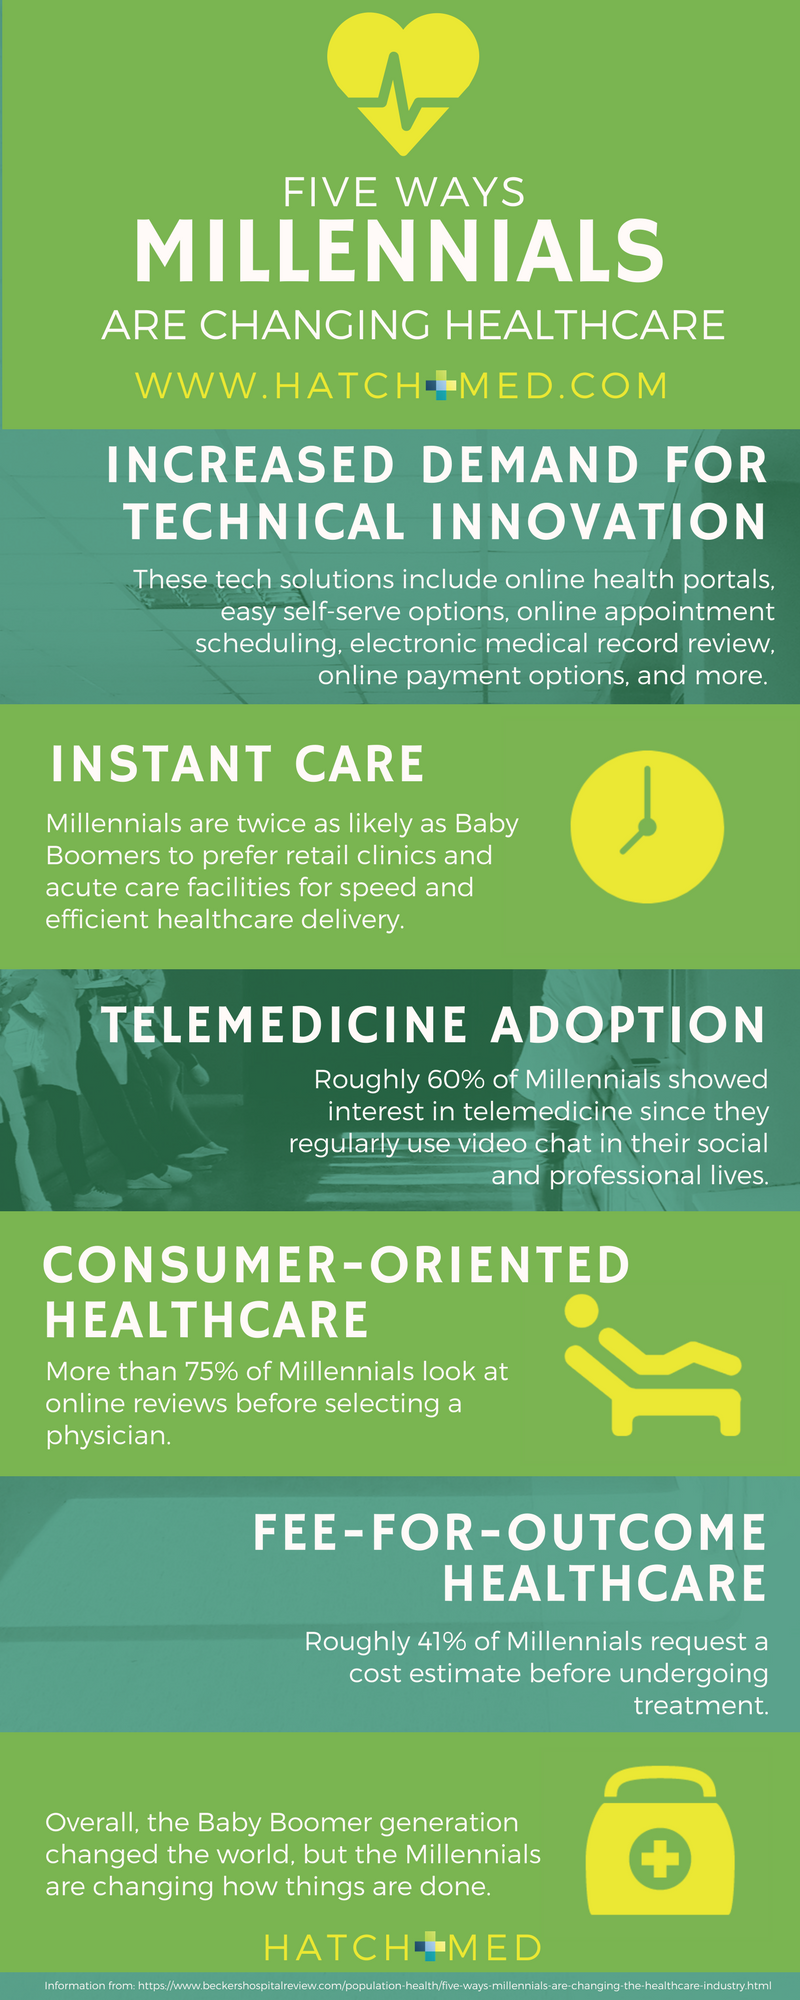 5 ways millennials are changing healthcare infographic